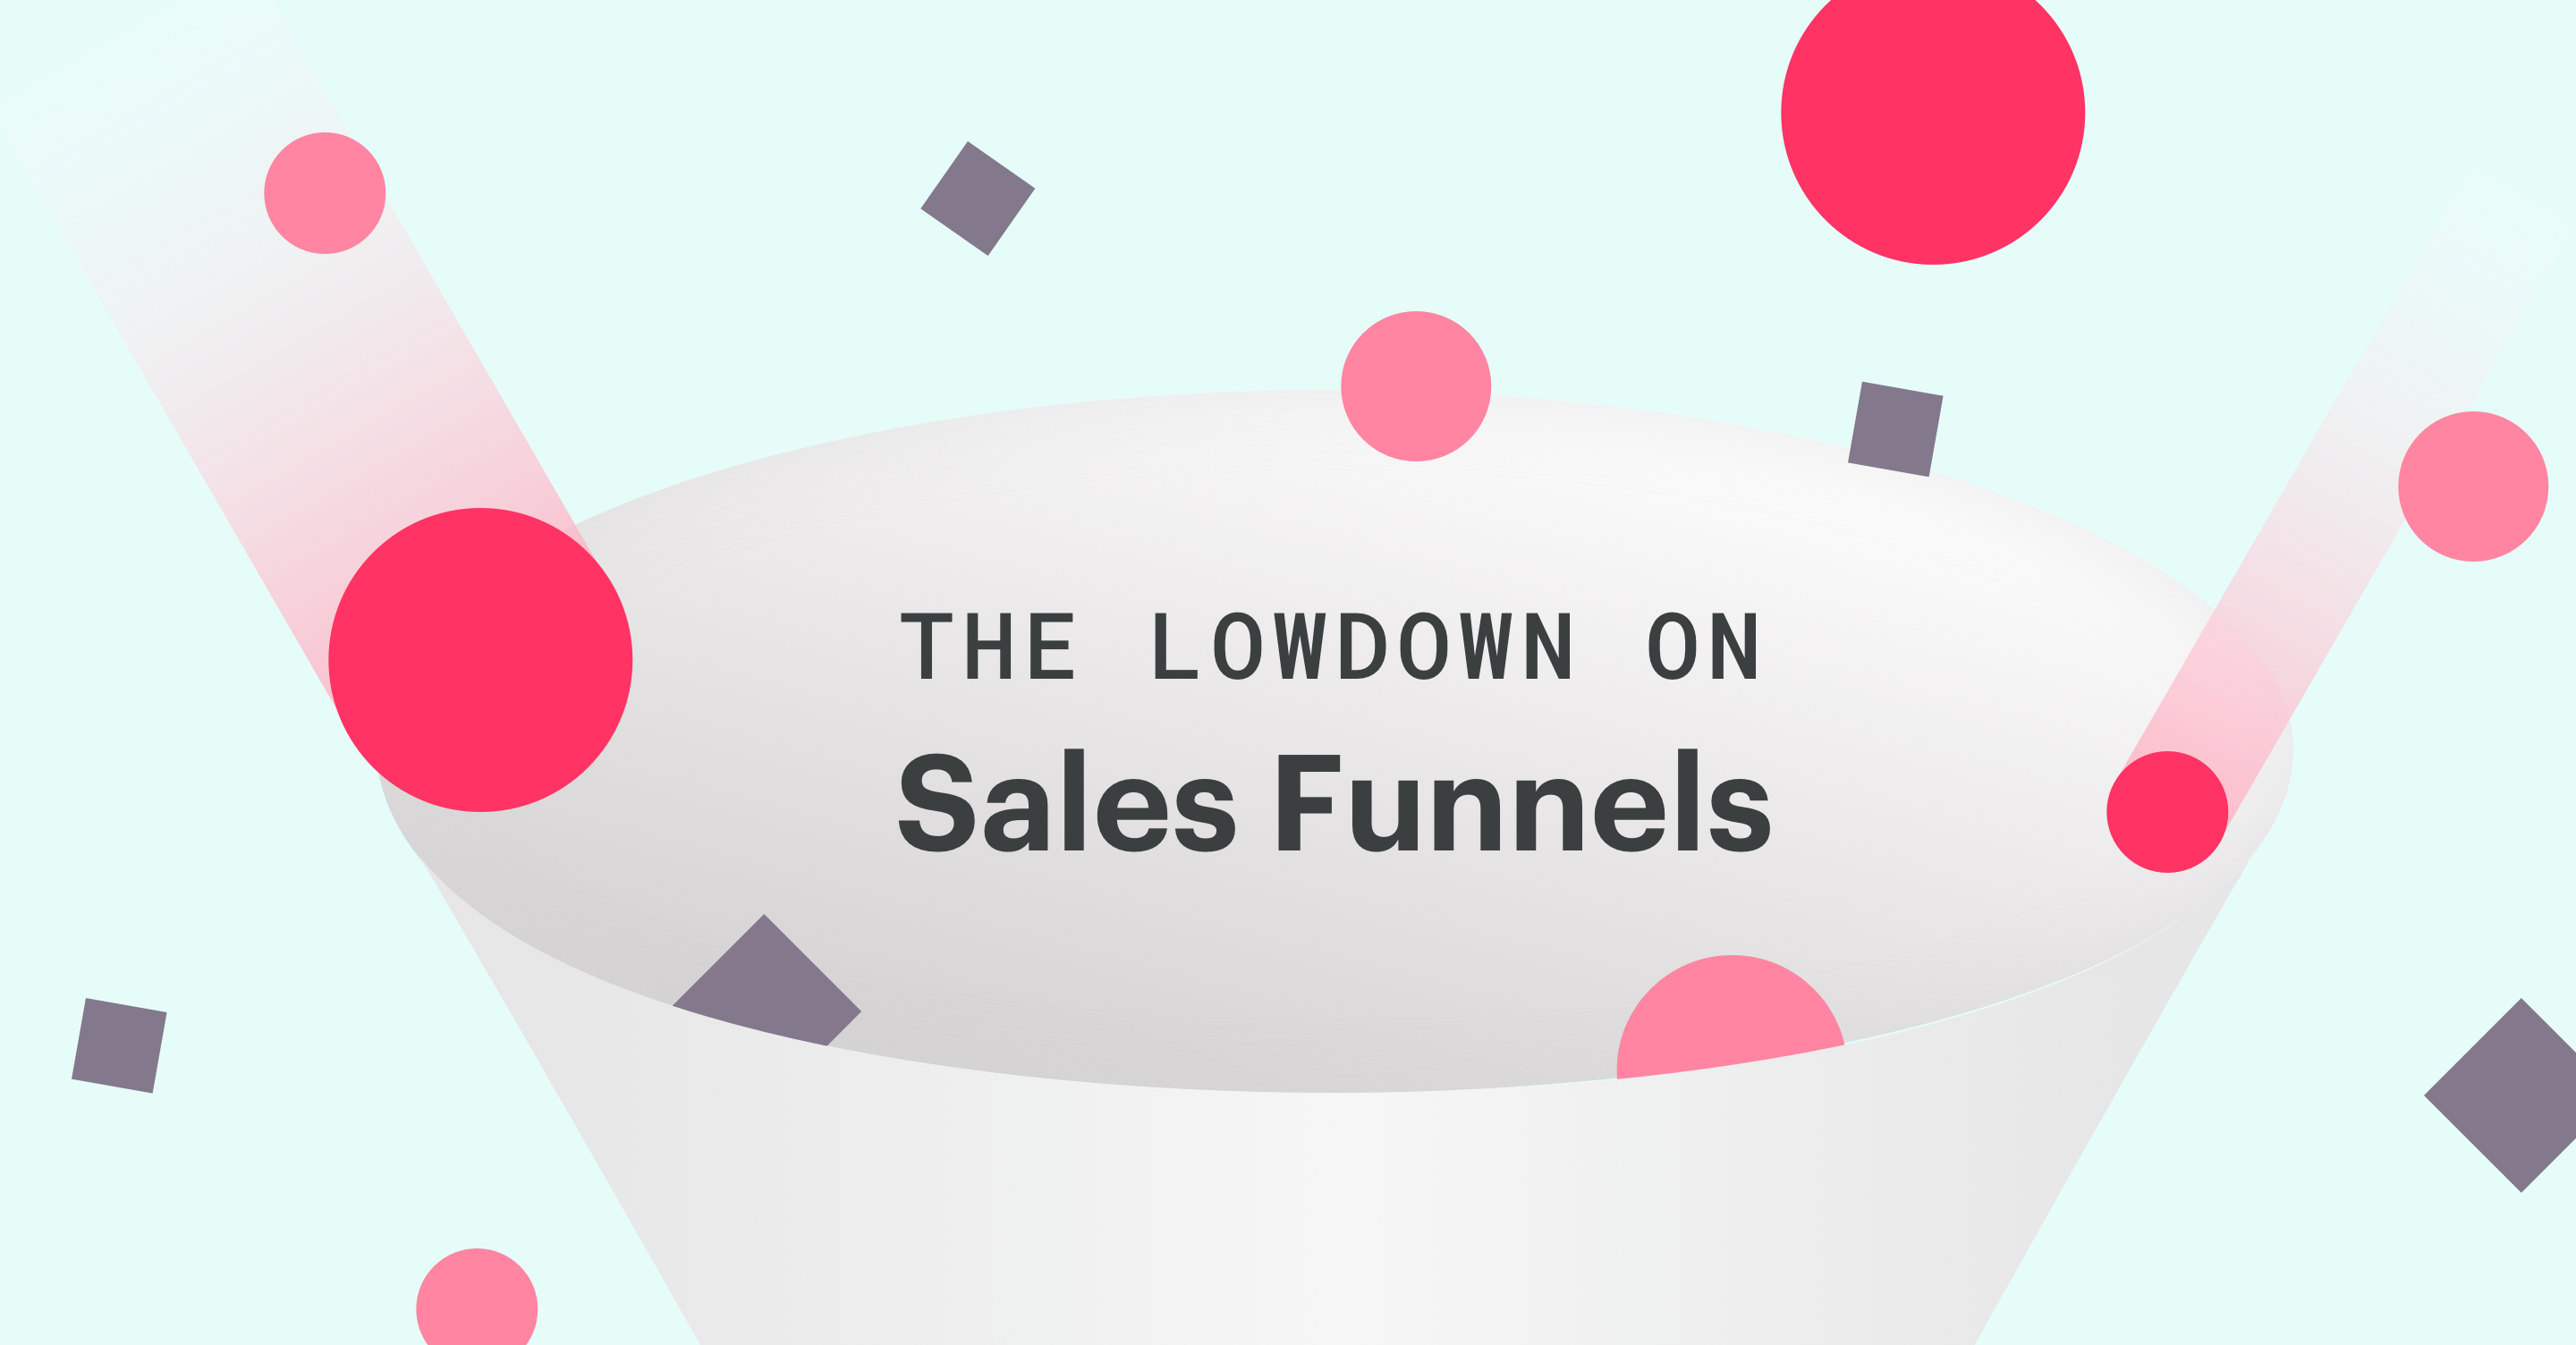 What's a Sales Funnel & Why Do People Obsess About It?